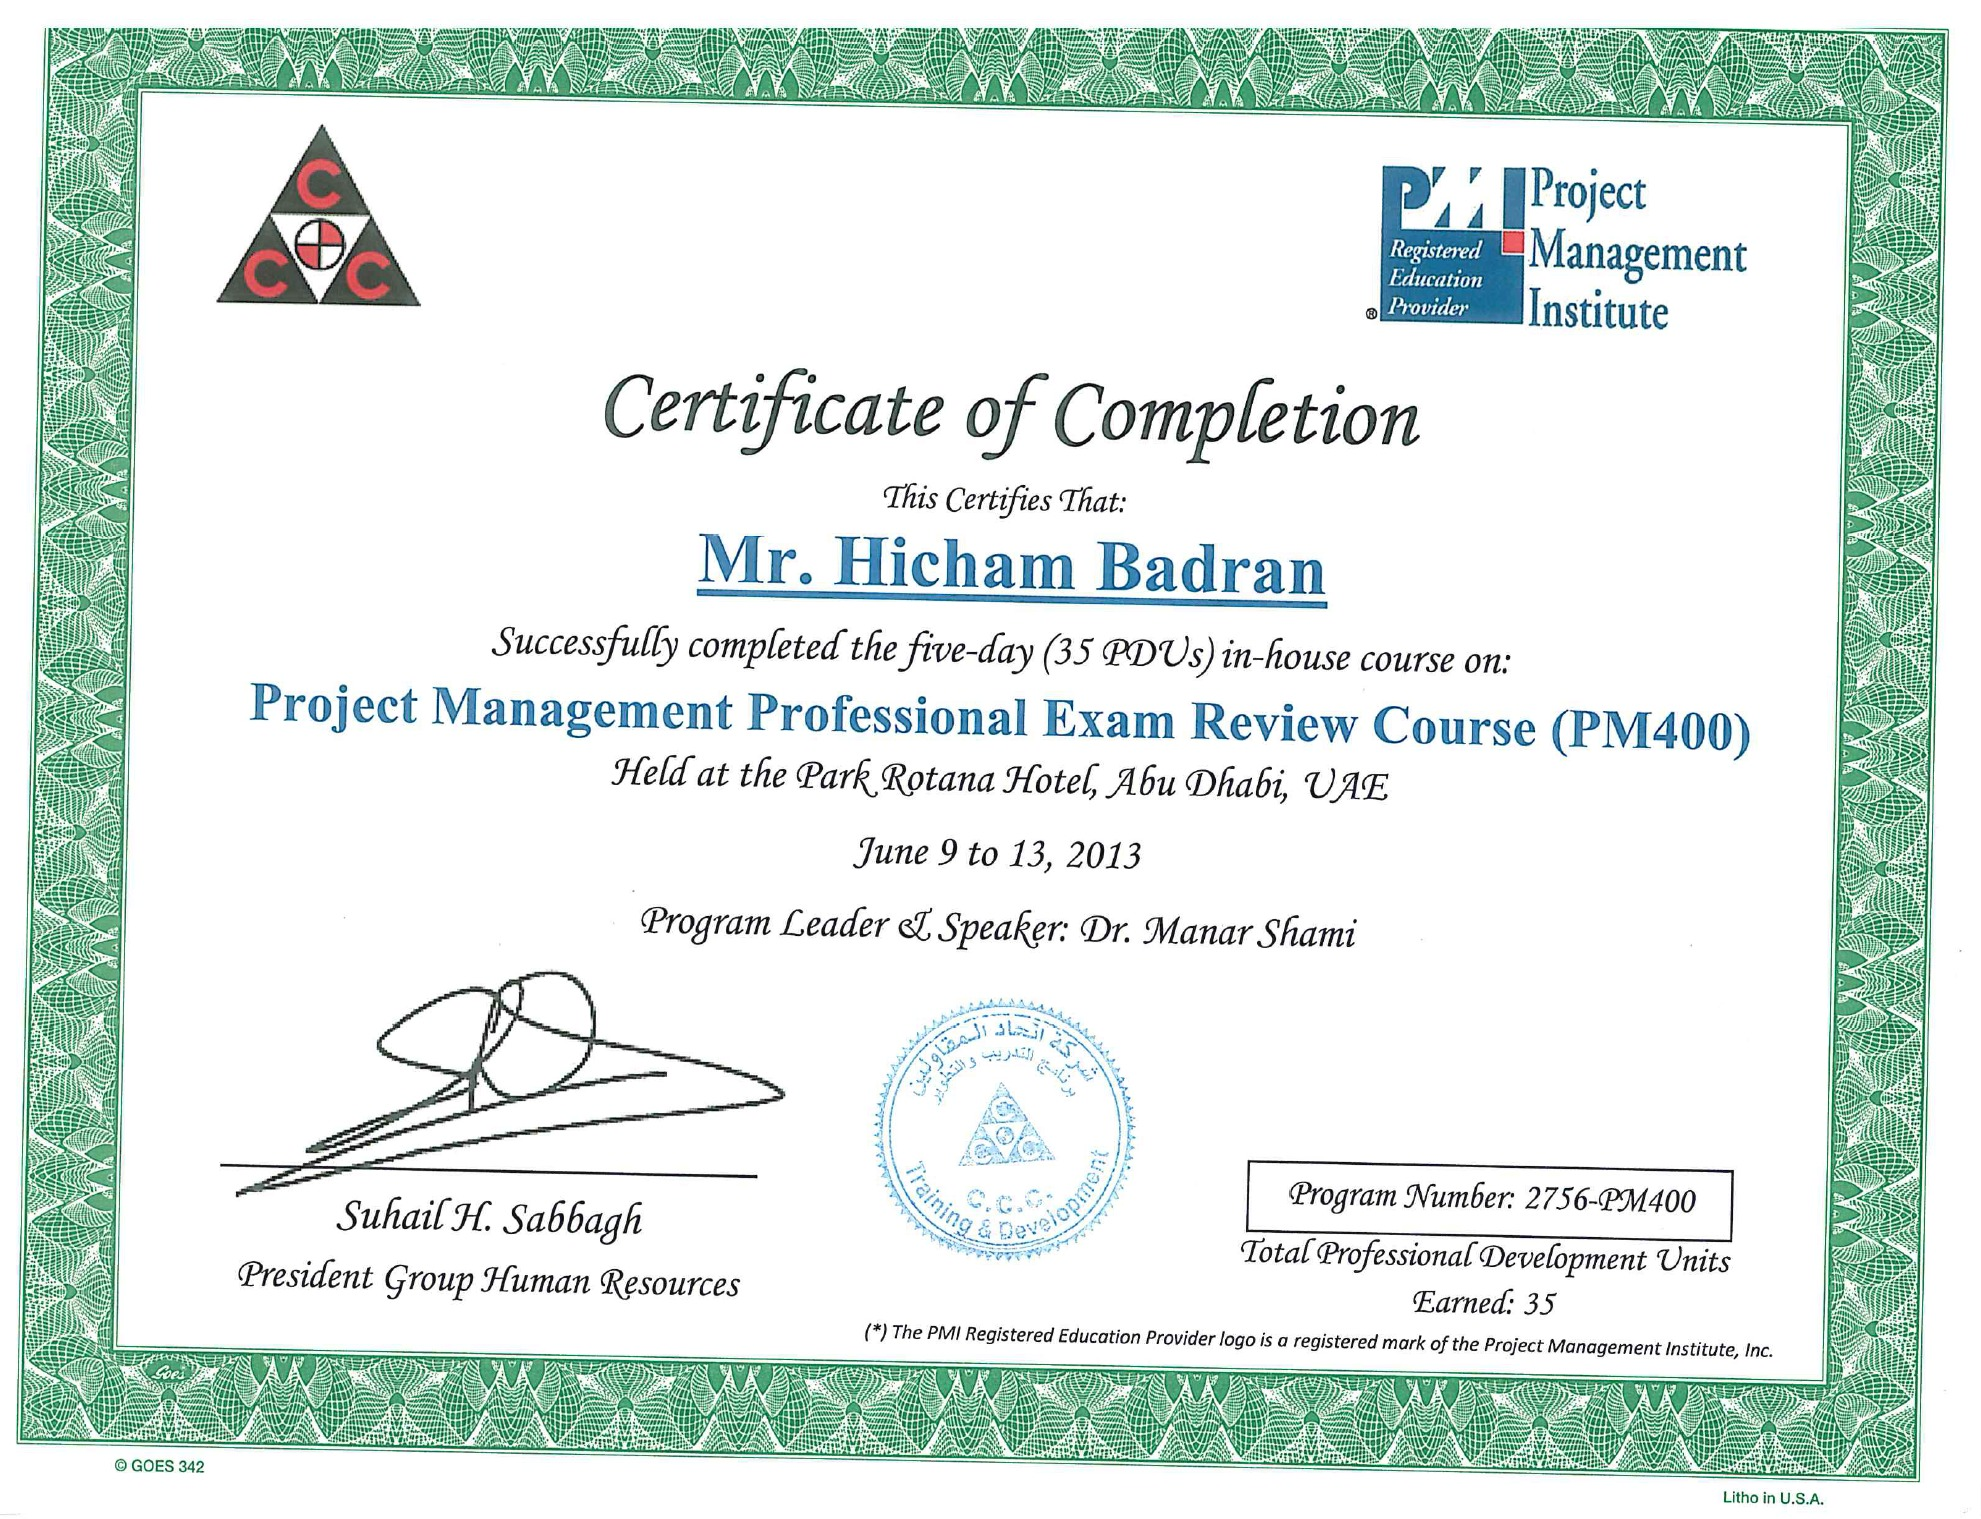 ccc technicalproject management institute training program 1betcityfo Images